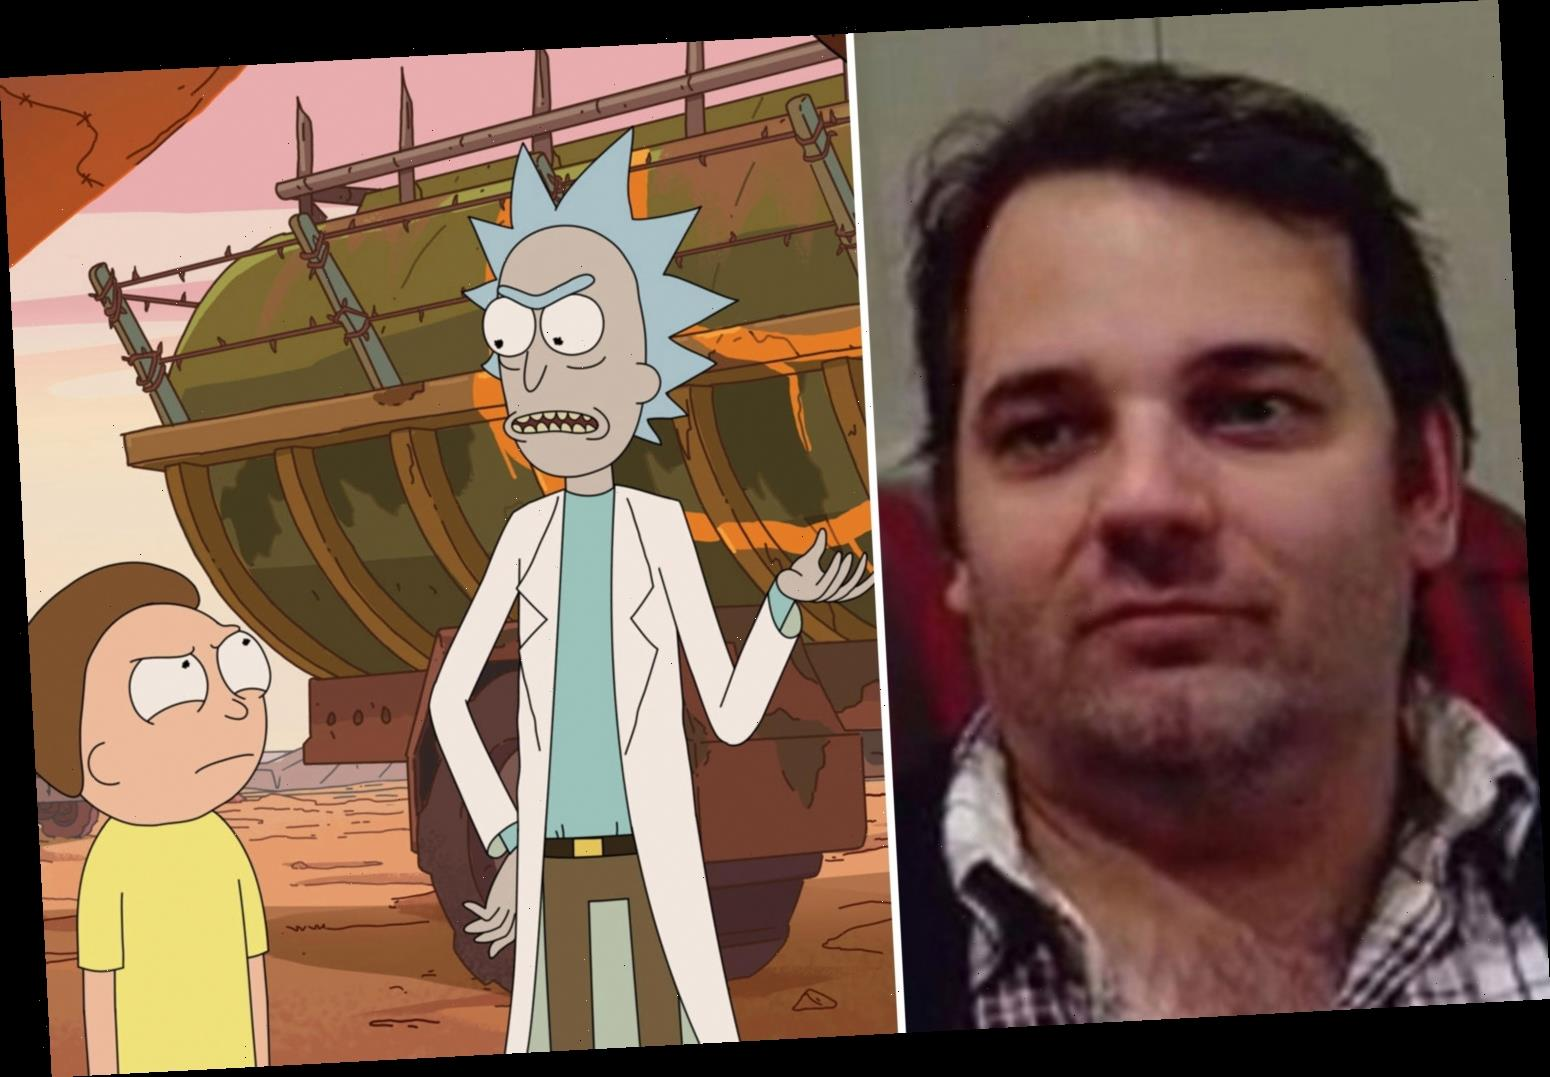 Calls for Rick and Morty to be CANCELED over vile re-surfaced vid of creator Dan Harmon 'pretending to rape baby doll'